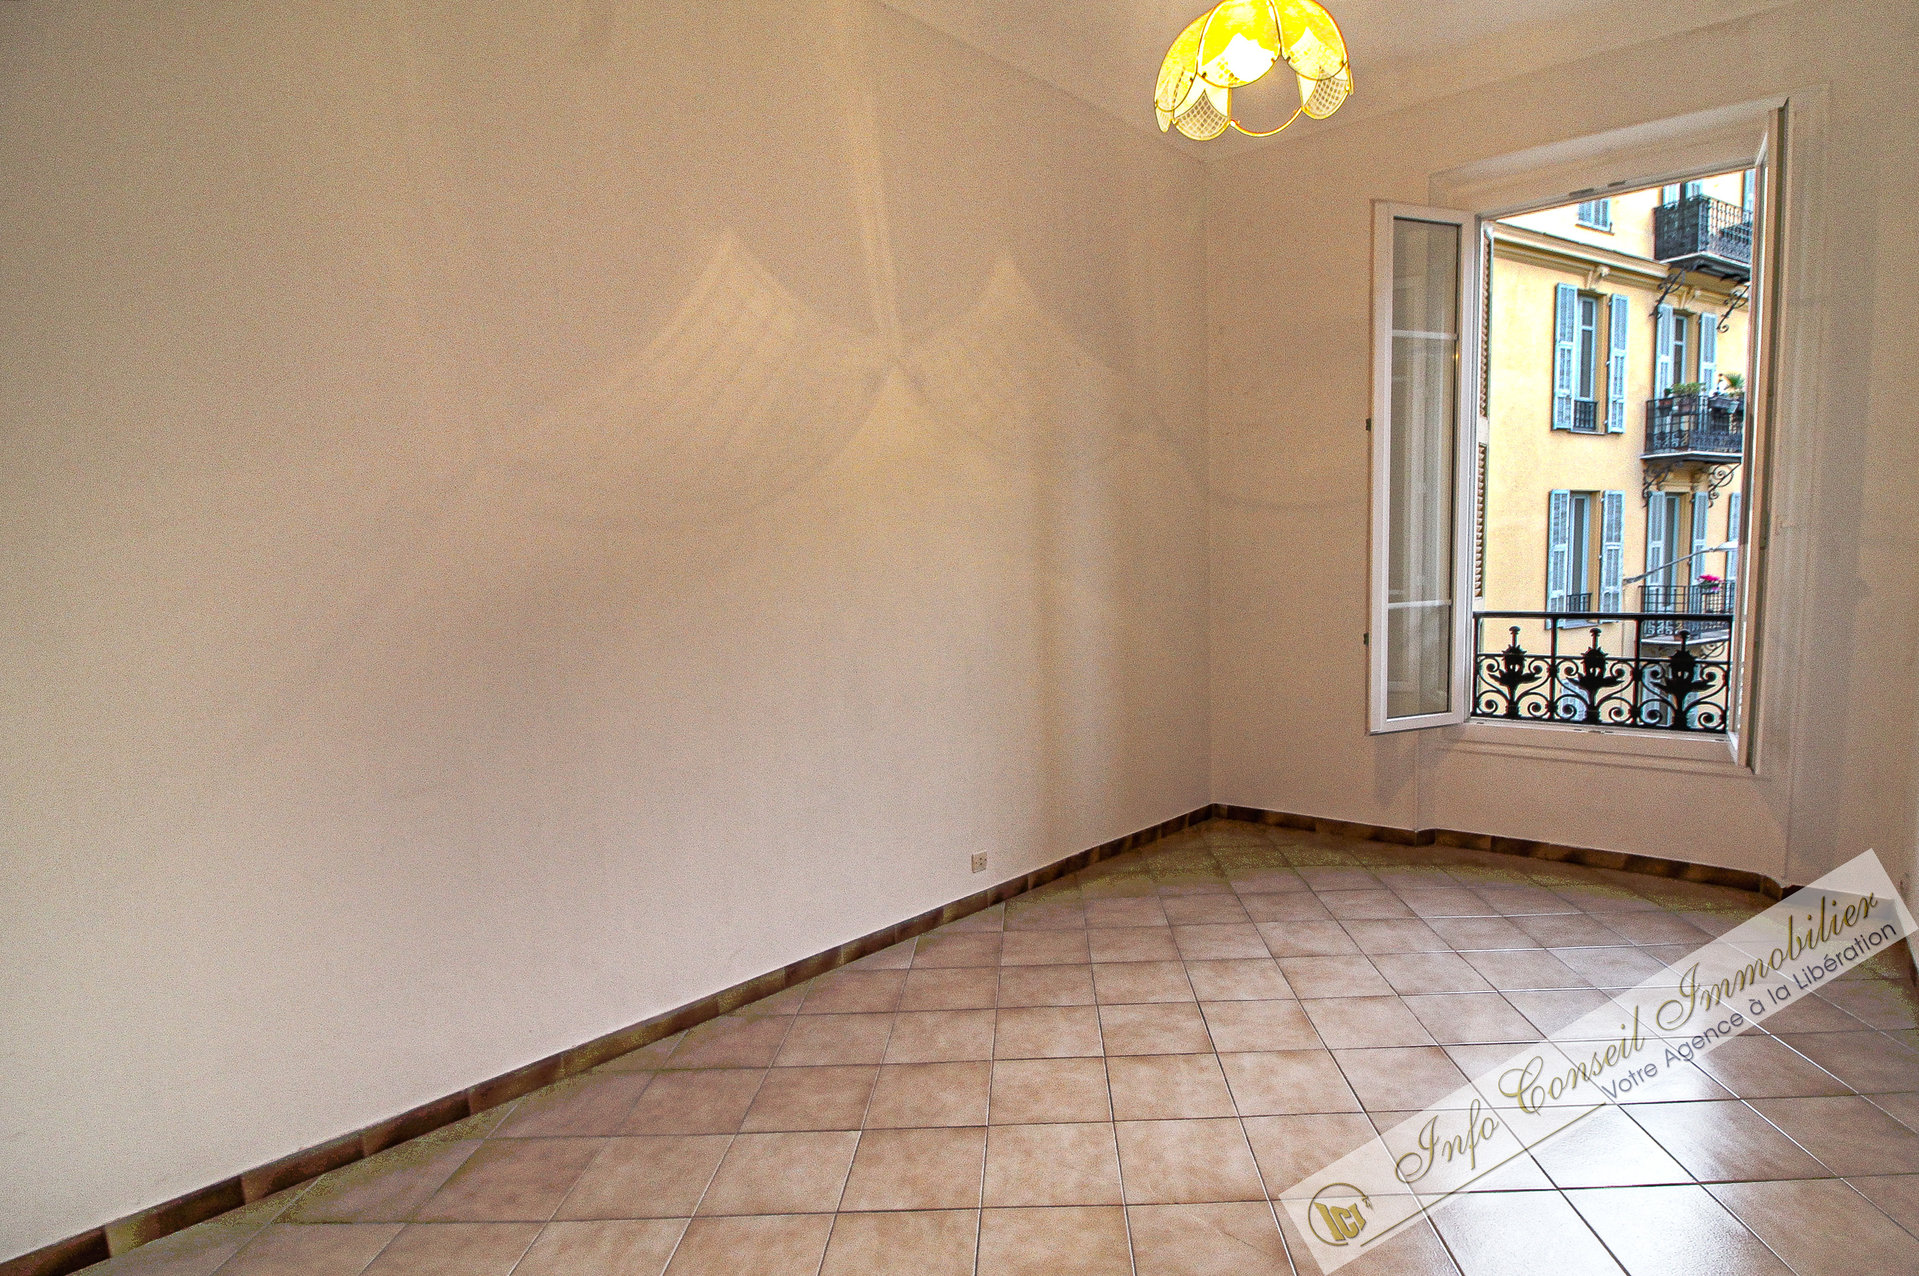 COEUR LIBERATION - Emplacement n°1 - 3P Balcon - 199.000 €